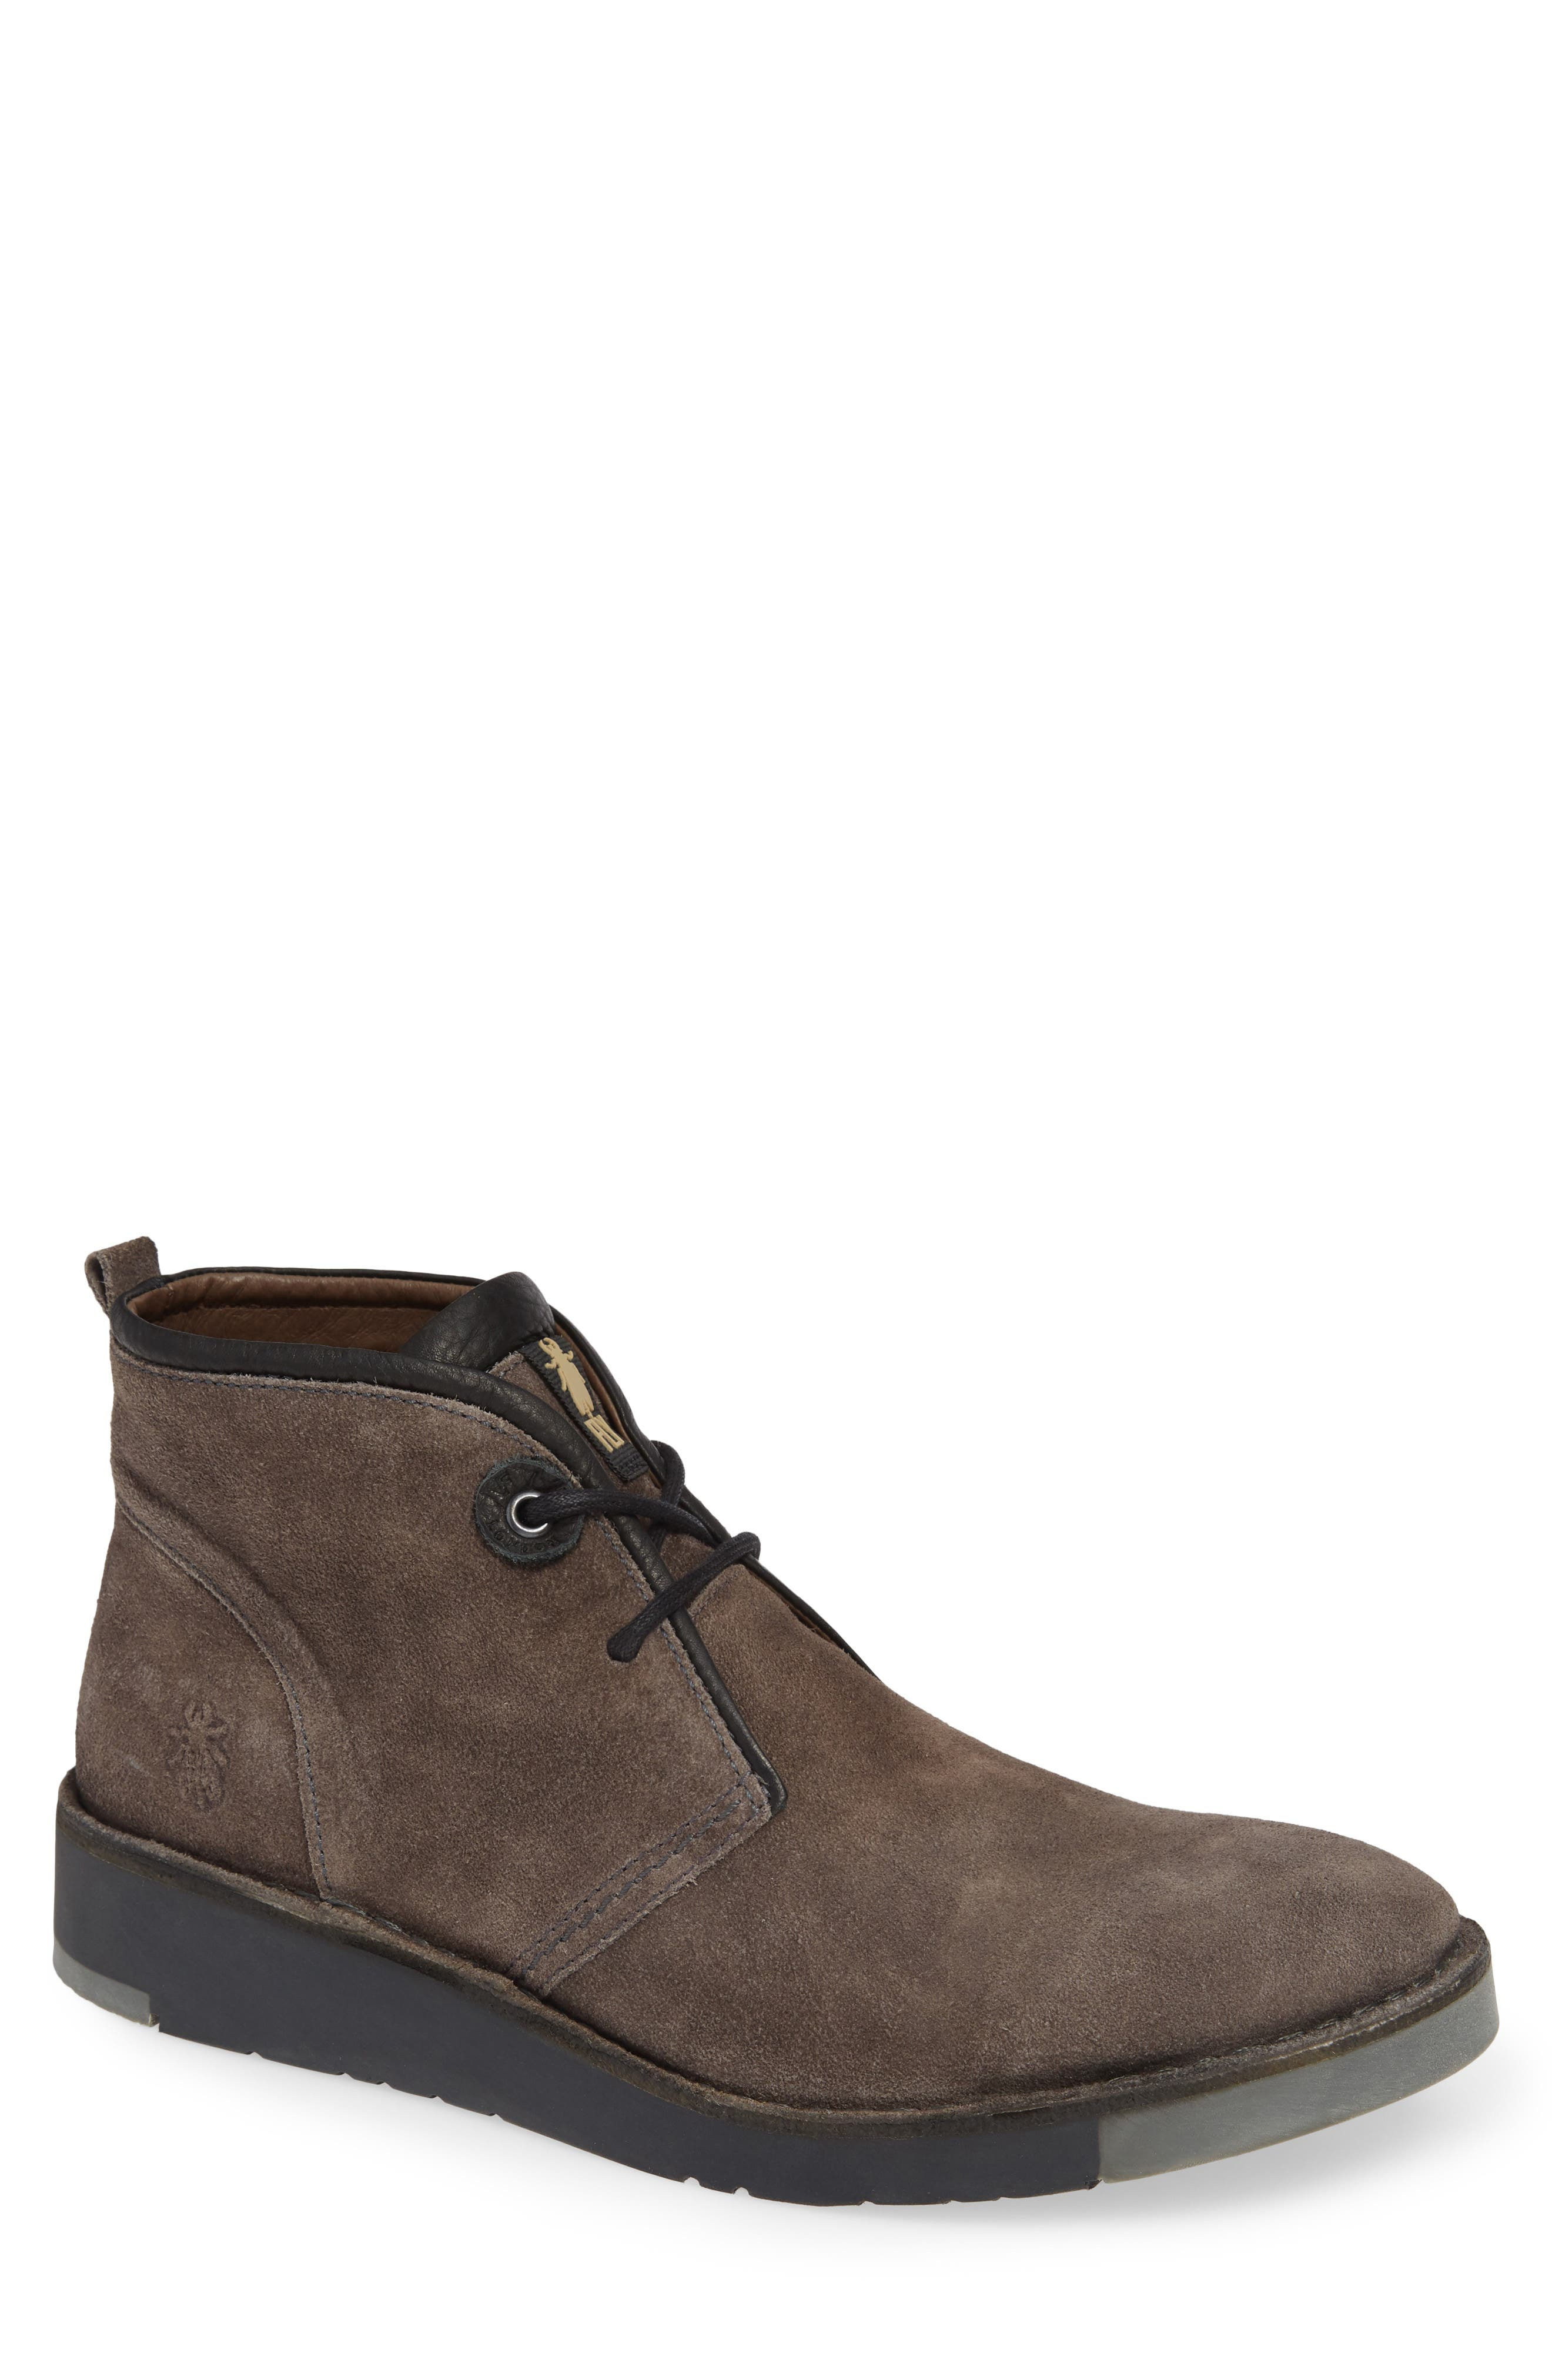 Sion Water Resistant Chukka Boot,                         Main,                         color, GREY OIL SUEDE